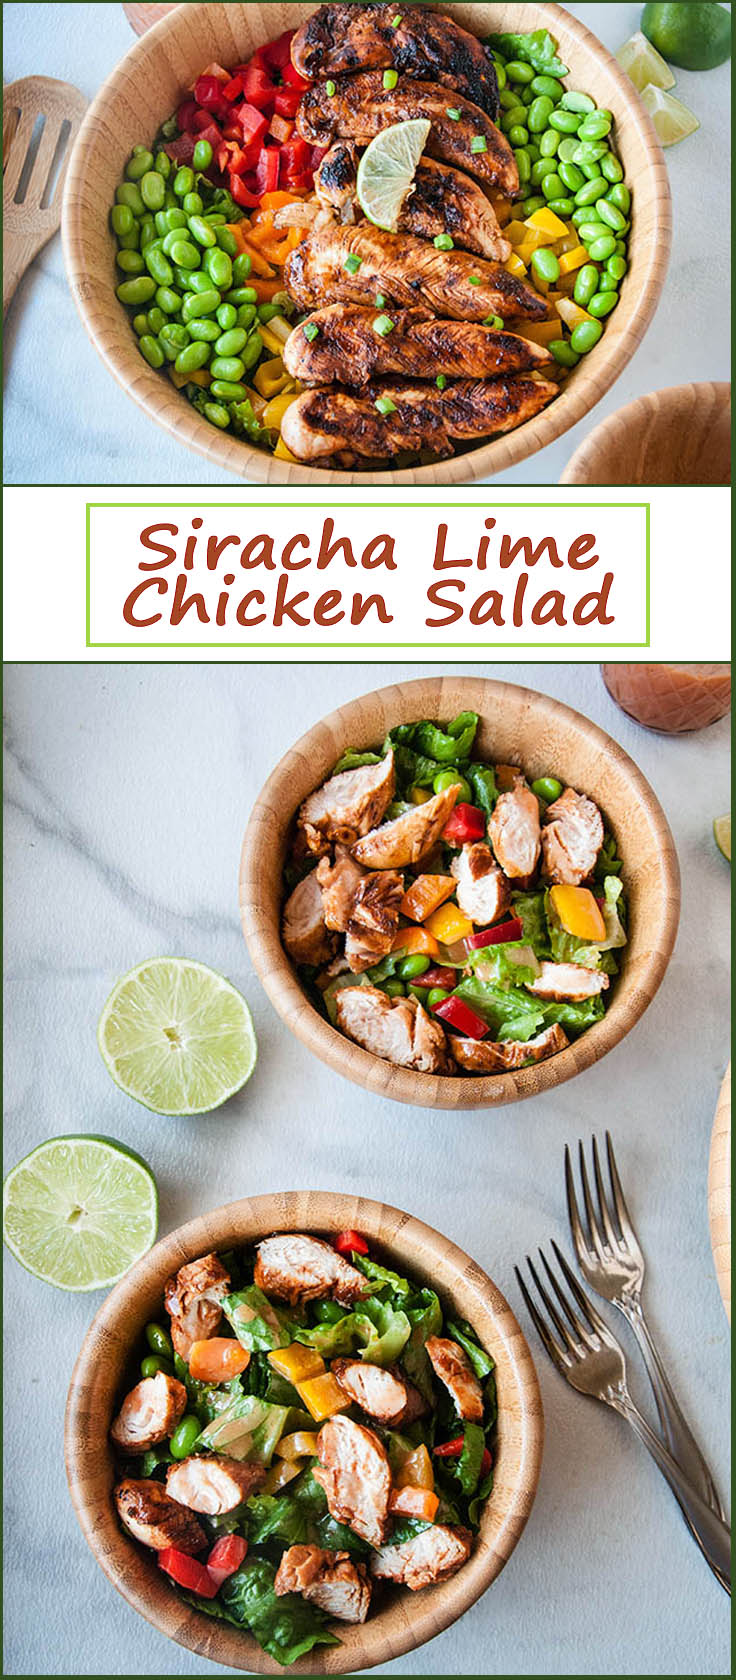 Siracha Lime Chicken Salad